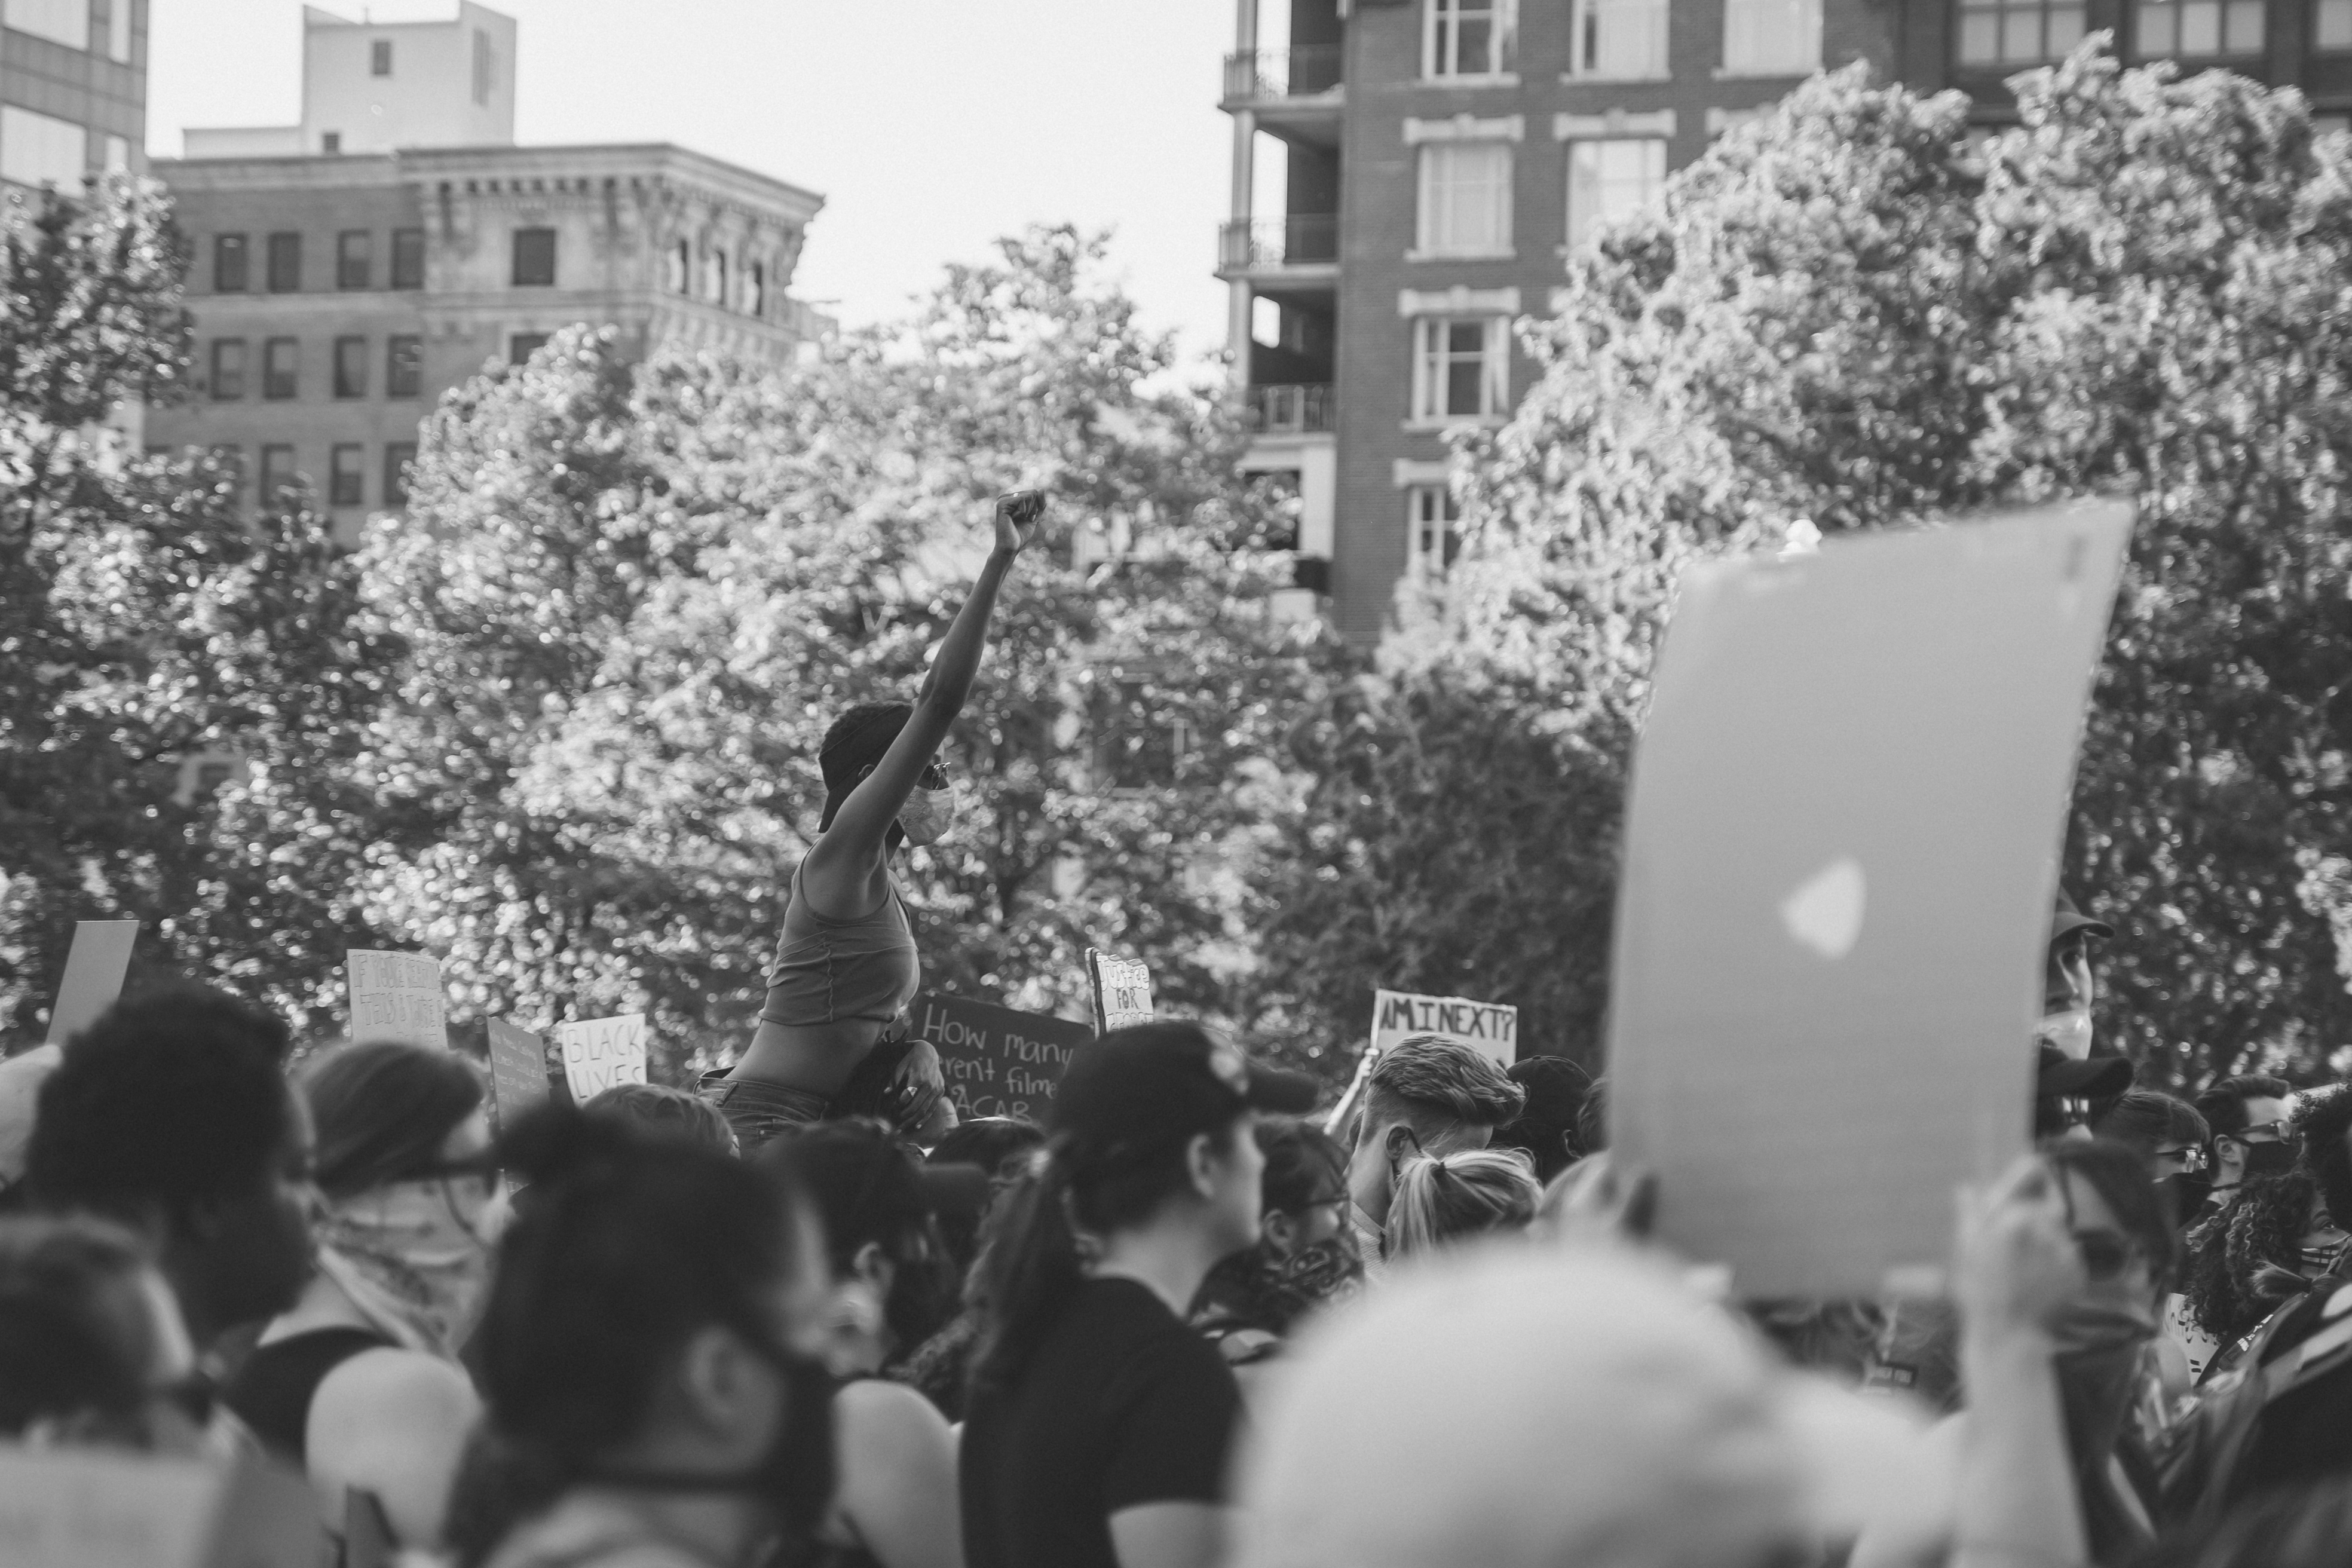 The middle ground of the black and white photo is in focus and shows a protestor during black lives matter demonstration sitting on someone's shoulders and is raising their closed right fist. The foreground shows blurred protestors facing the right side of the photo, with some holding signs. The background shows trees and buildings.